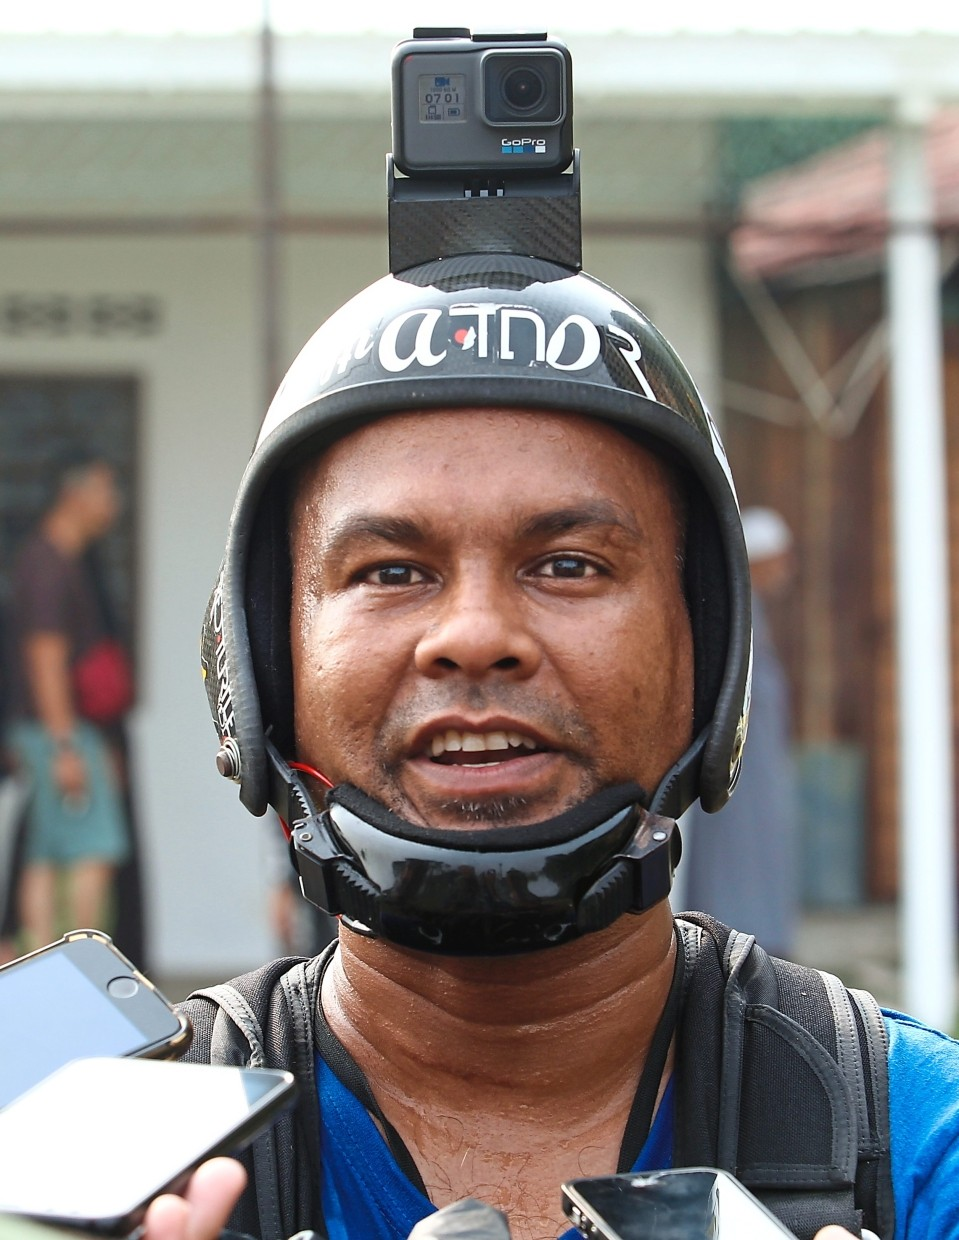 Mohd Nor is all smiles after making a safe landing.